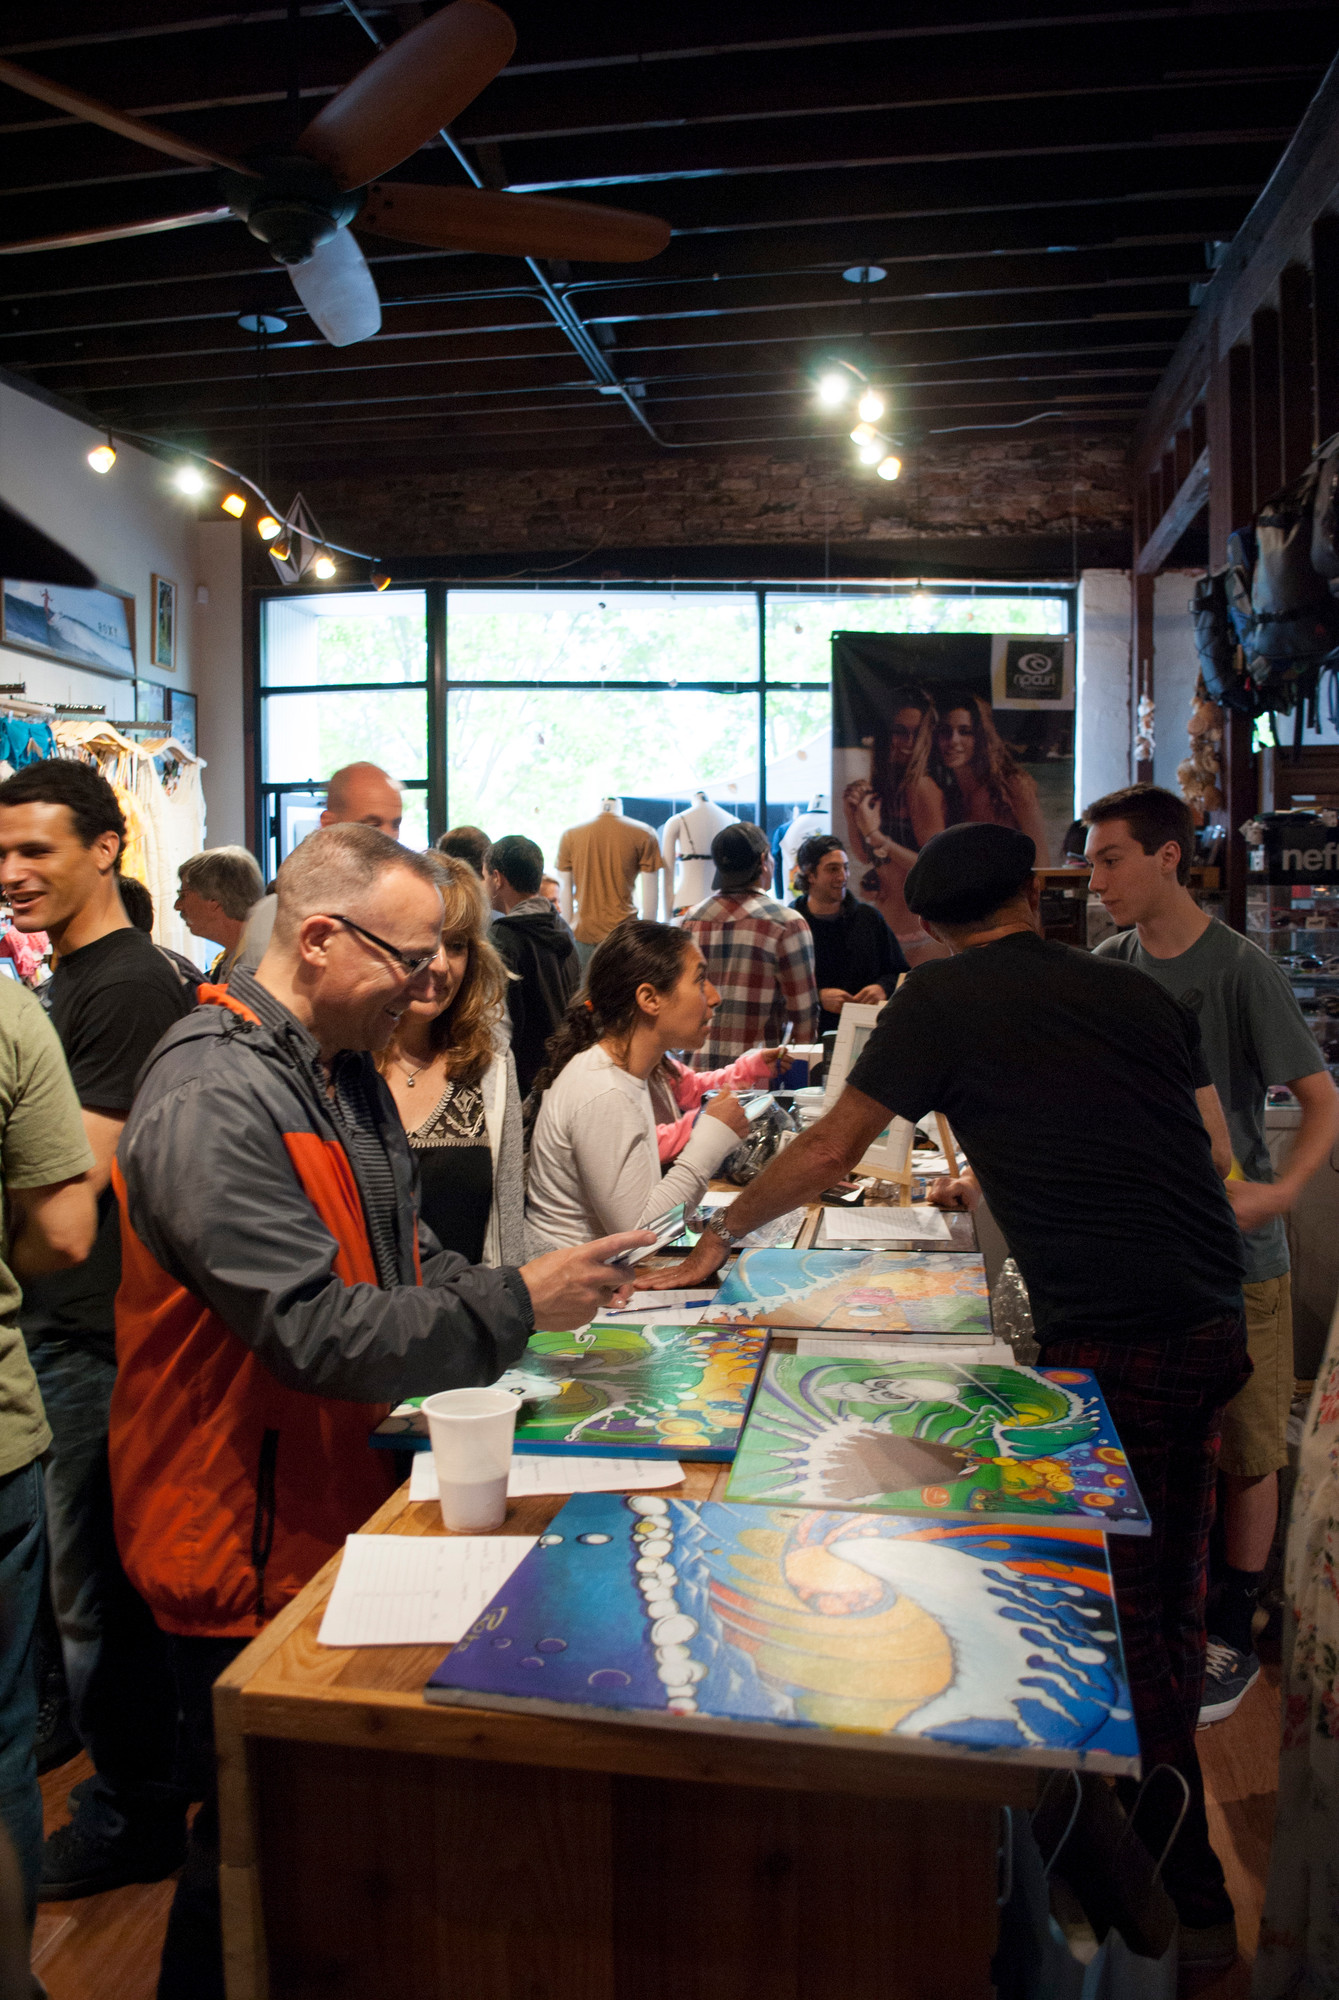 Unsound surf shop hosted its annual art show benefit last Saturday night.